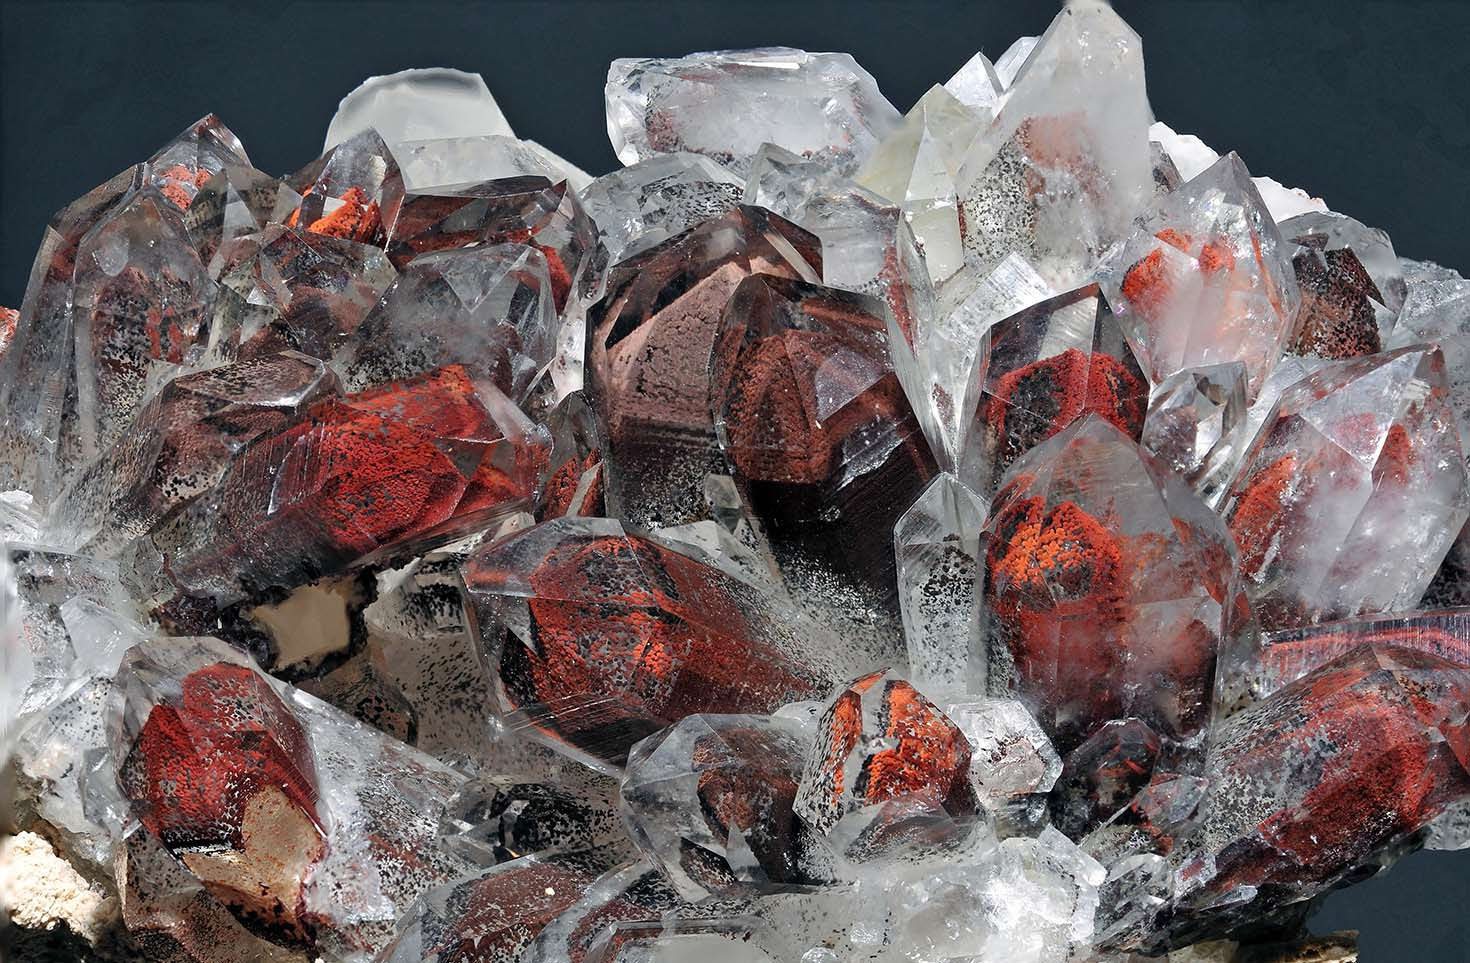 Quartz crystals with hematite (red stains) from South Africa